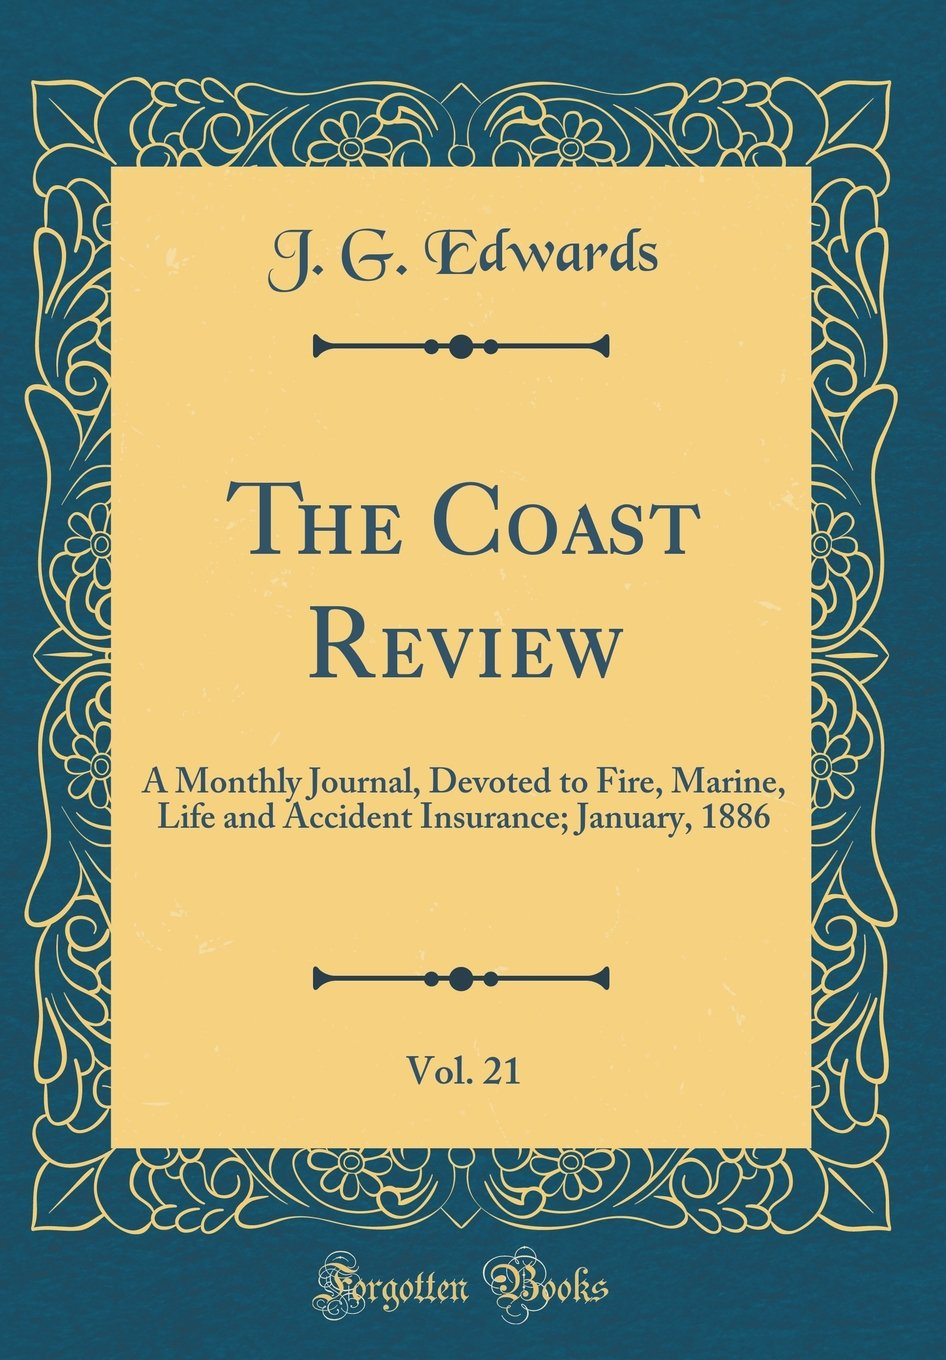 Download The Coast Review, Vol. 21: A Monthly Journal, Devoted to Fire, Marine, Life and Accident Insurance; January, 1886 (Classic Reprint) PDF